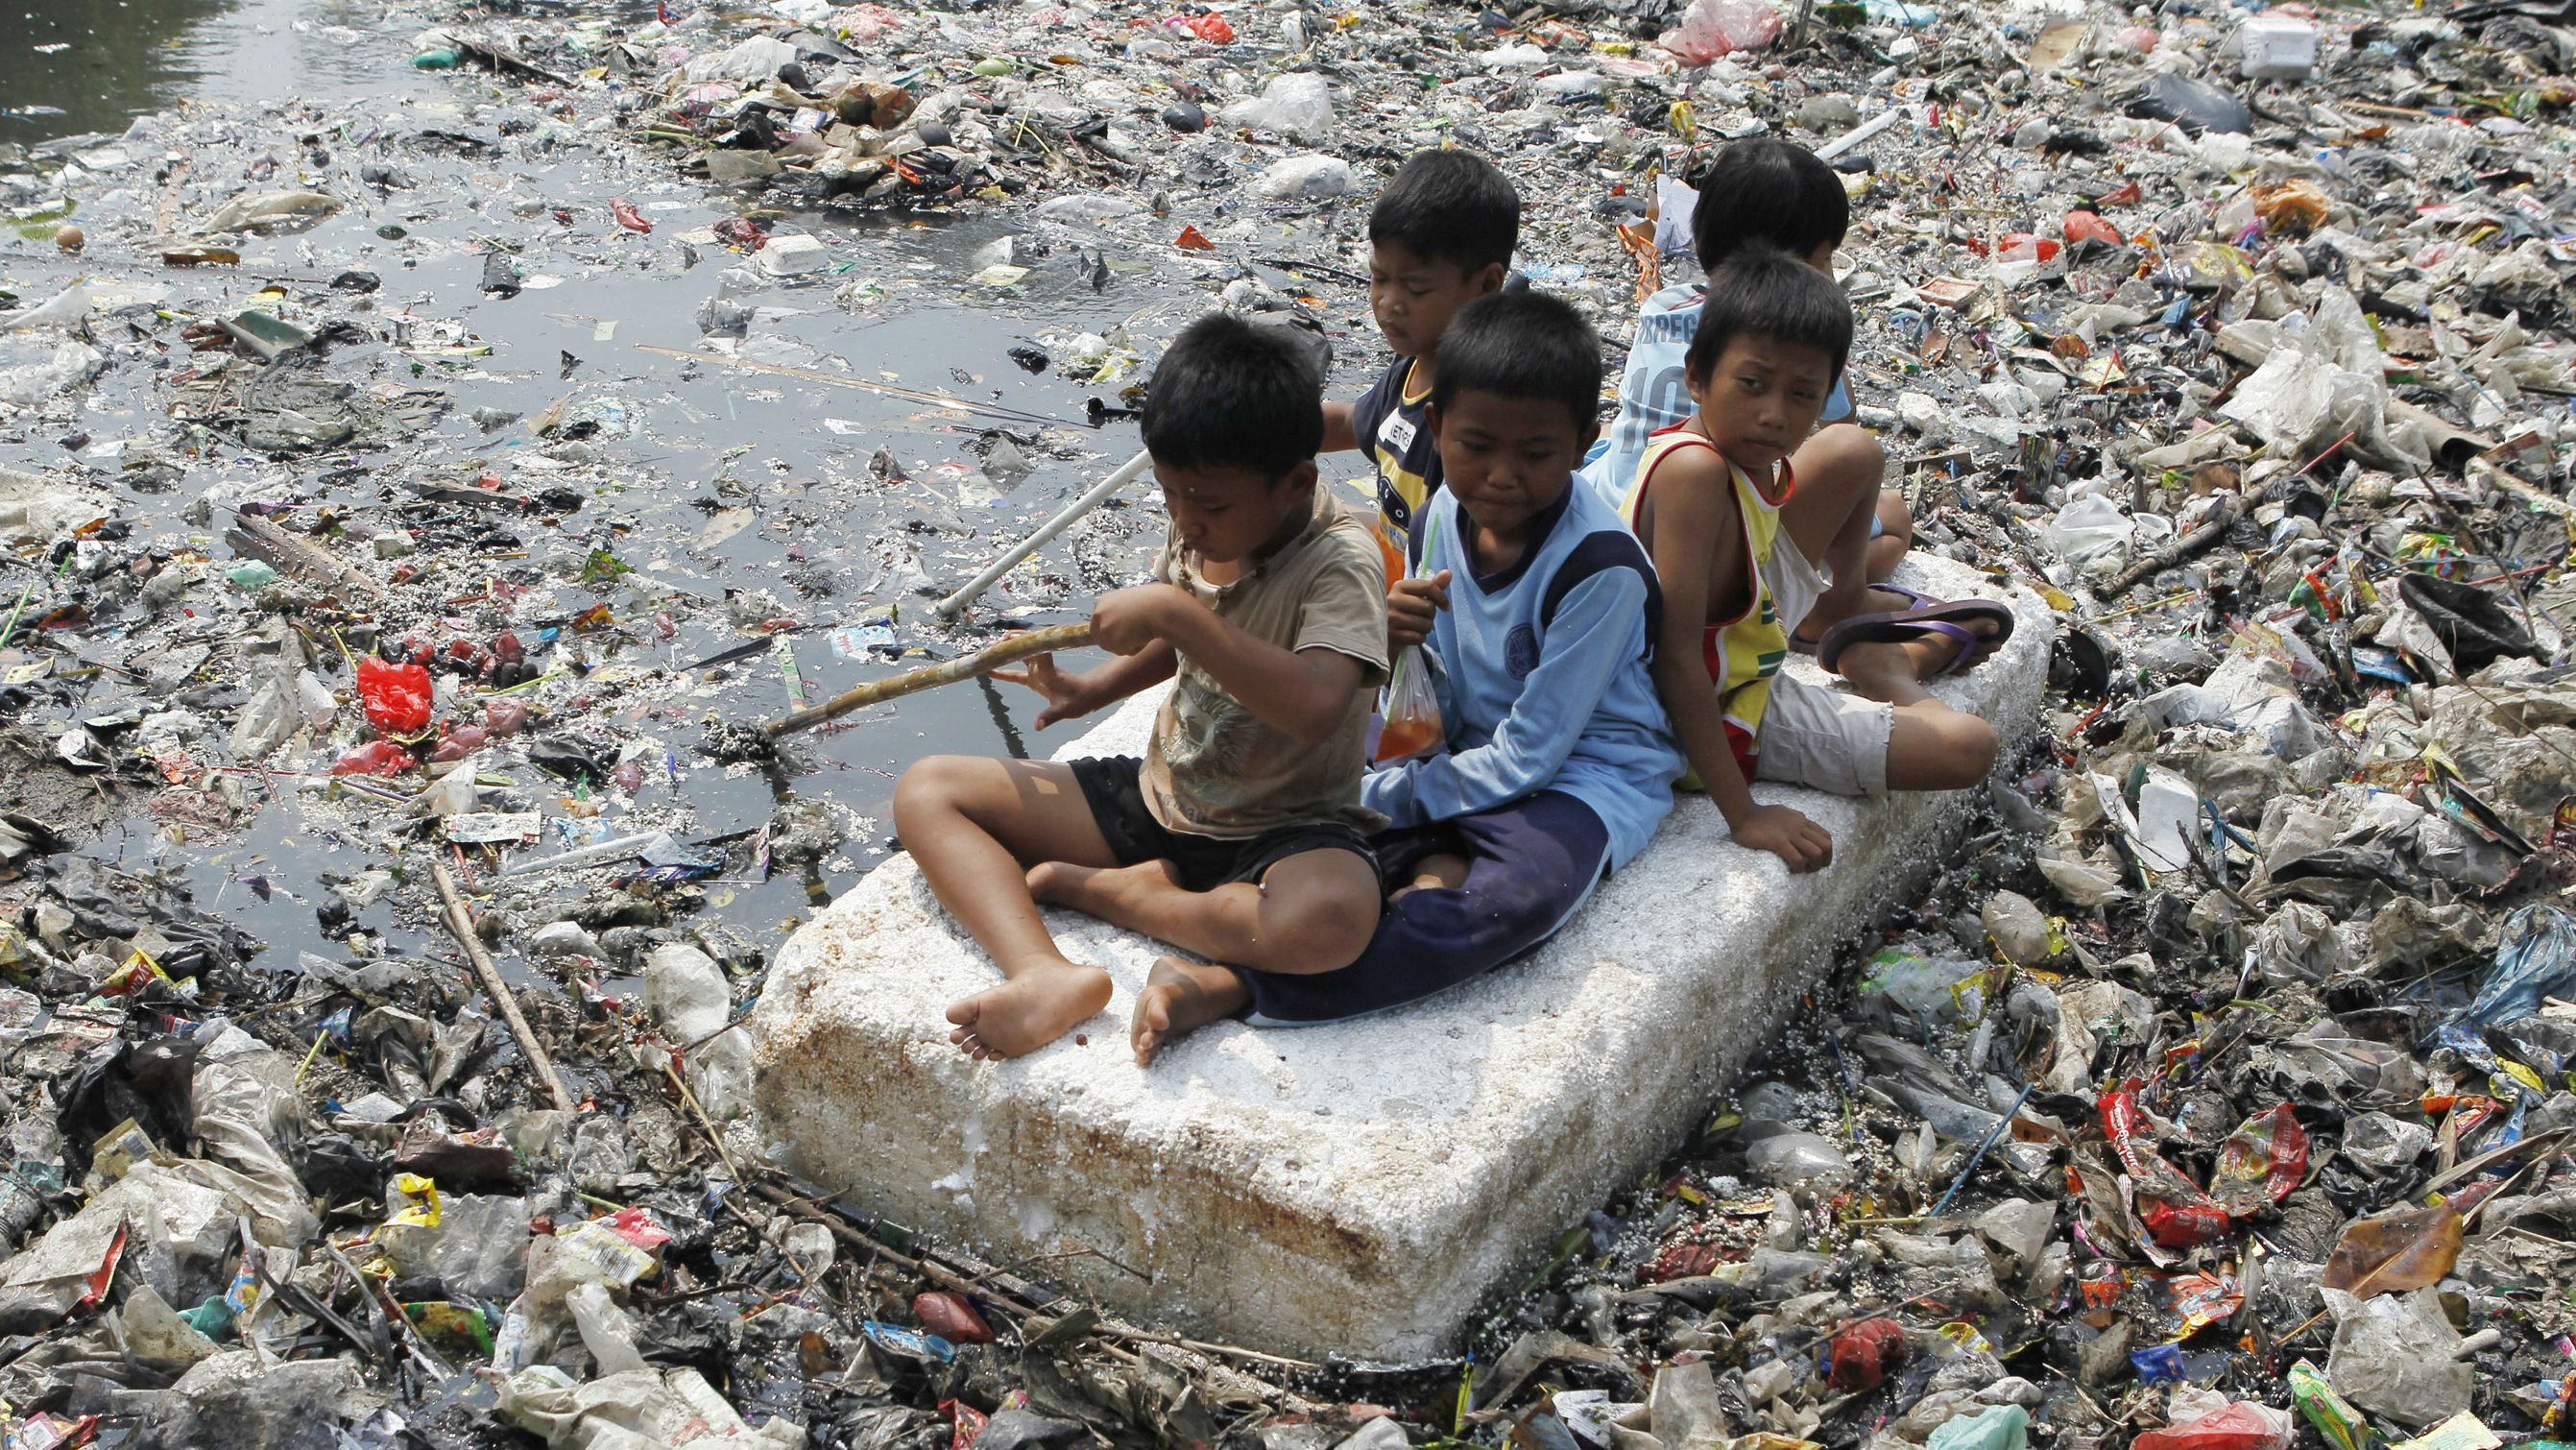 Children sitting on a makeshift raft play in a river full of rubbish in a slum area of Jakarta September 19, 2012. REUTERS/Enny Nurahen